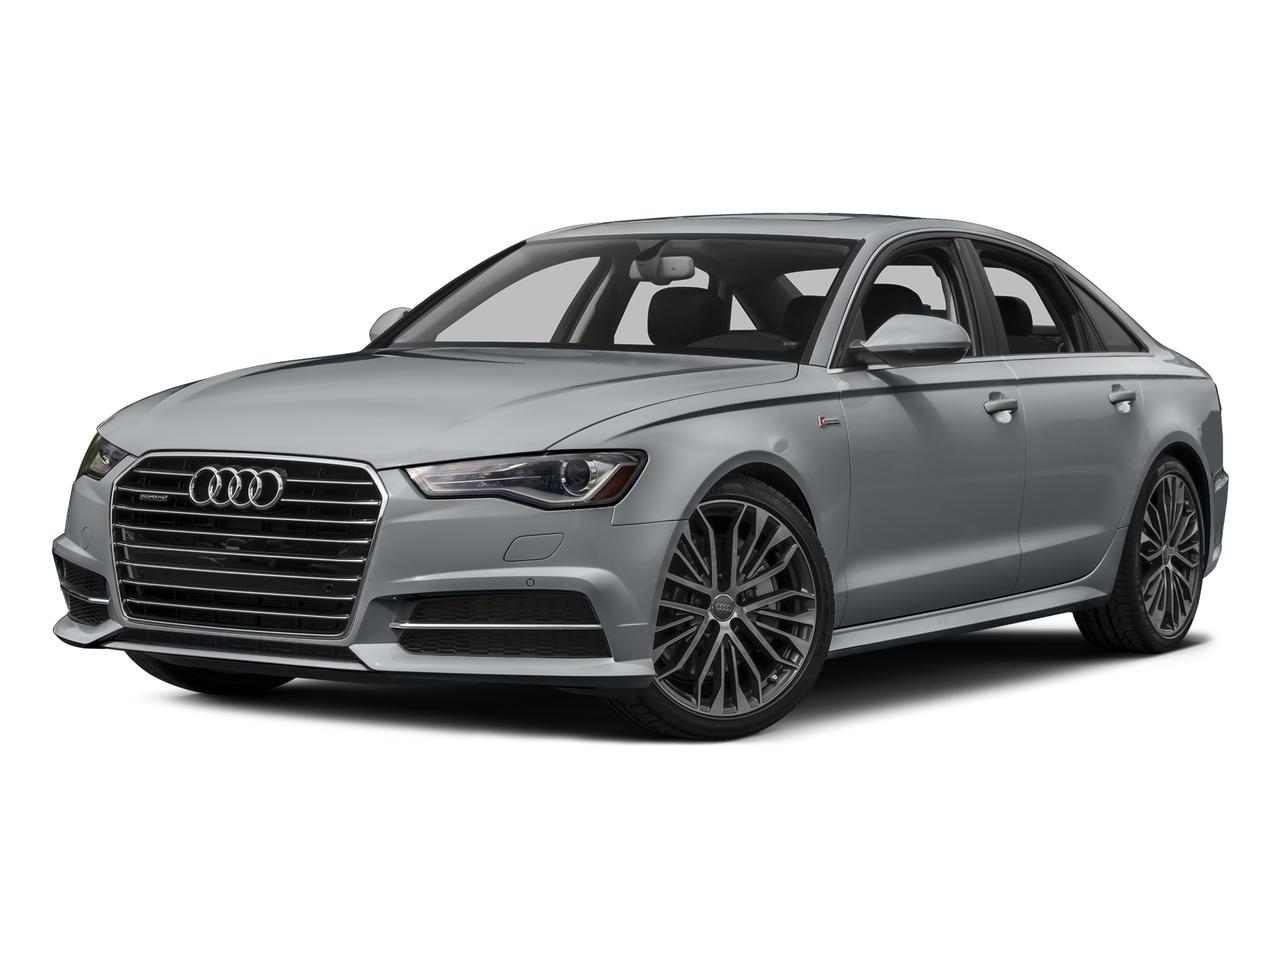 2017 Audi A6 Vehicle Photo in Appleton, WI 54913